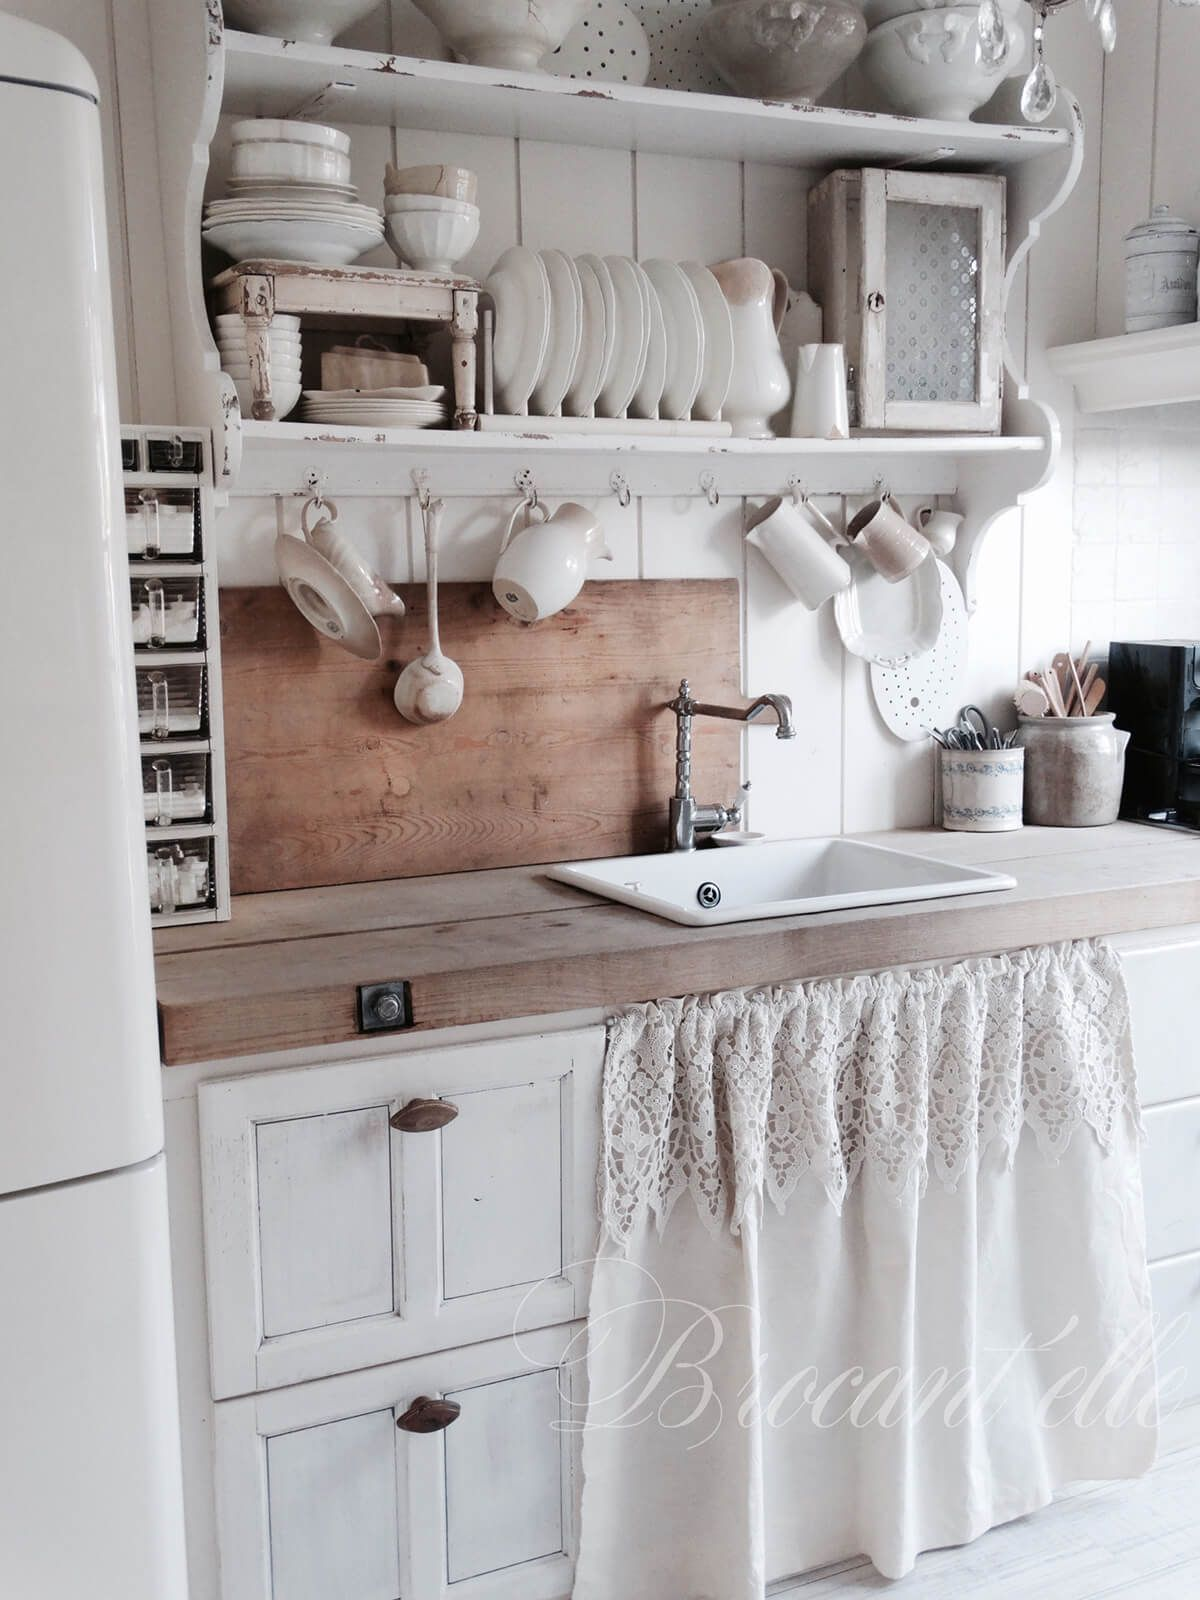 15 Delightful Cottage Kitchen Design and Decorating Ideas that